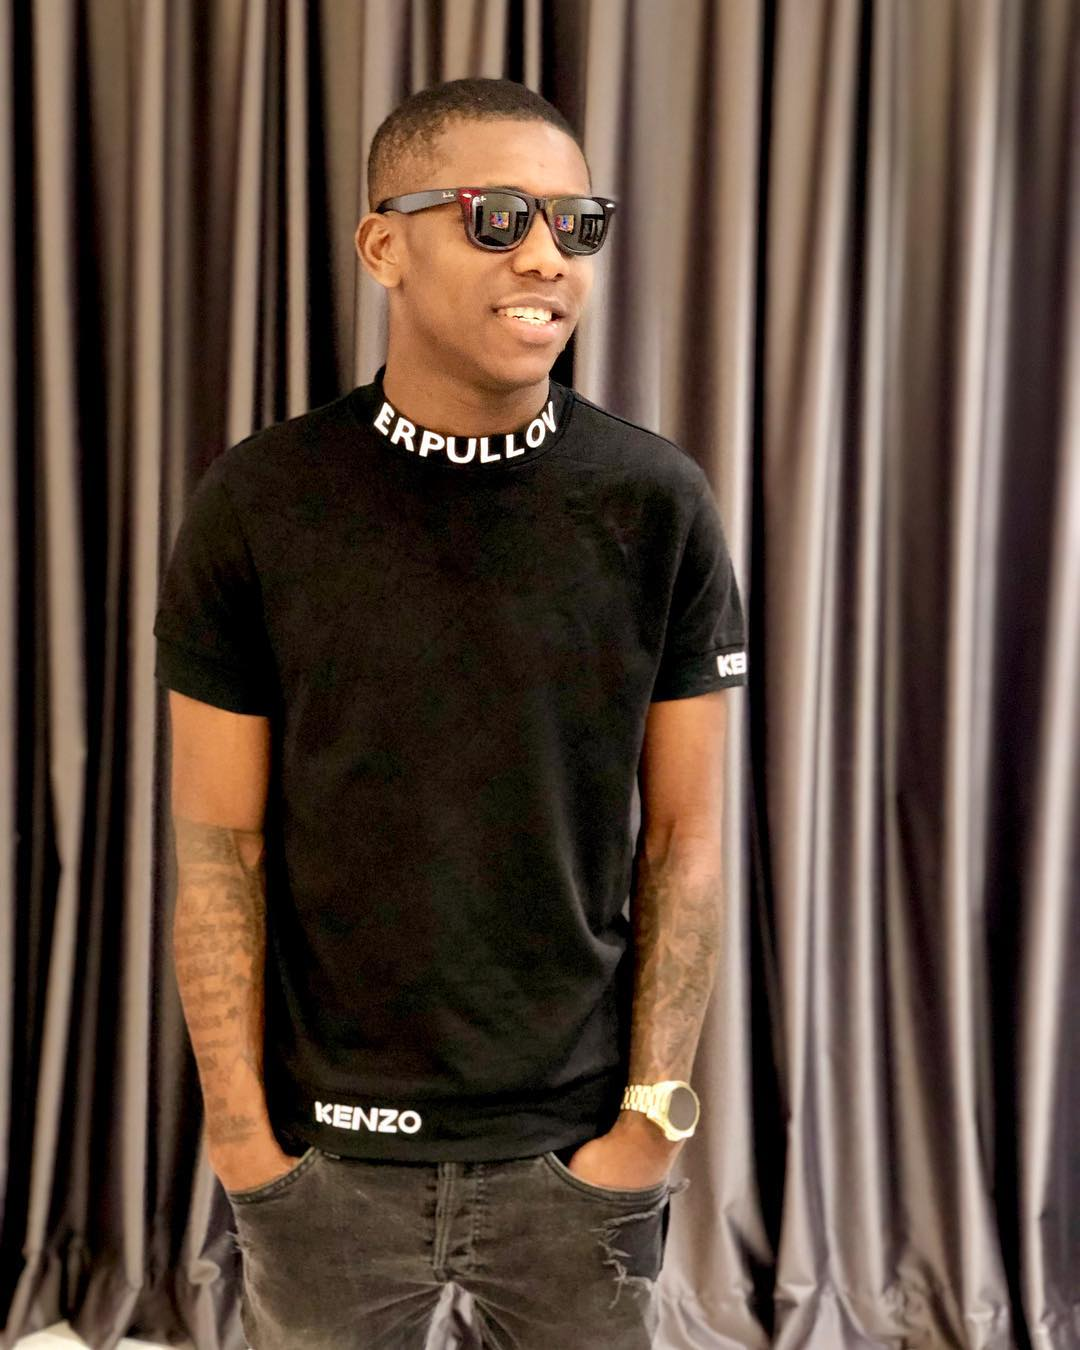 My Former Landlady Use My Eye See Shege: Small Doctor Opens Up